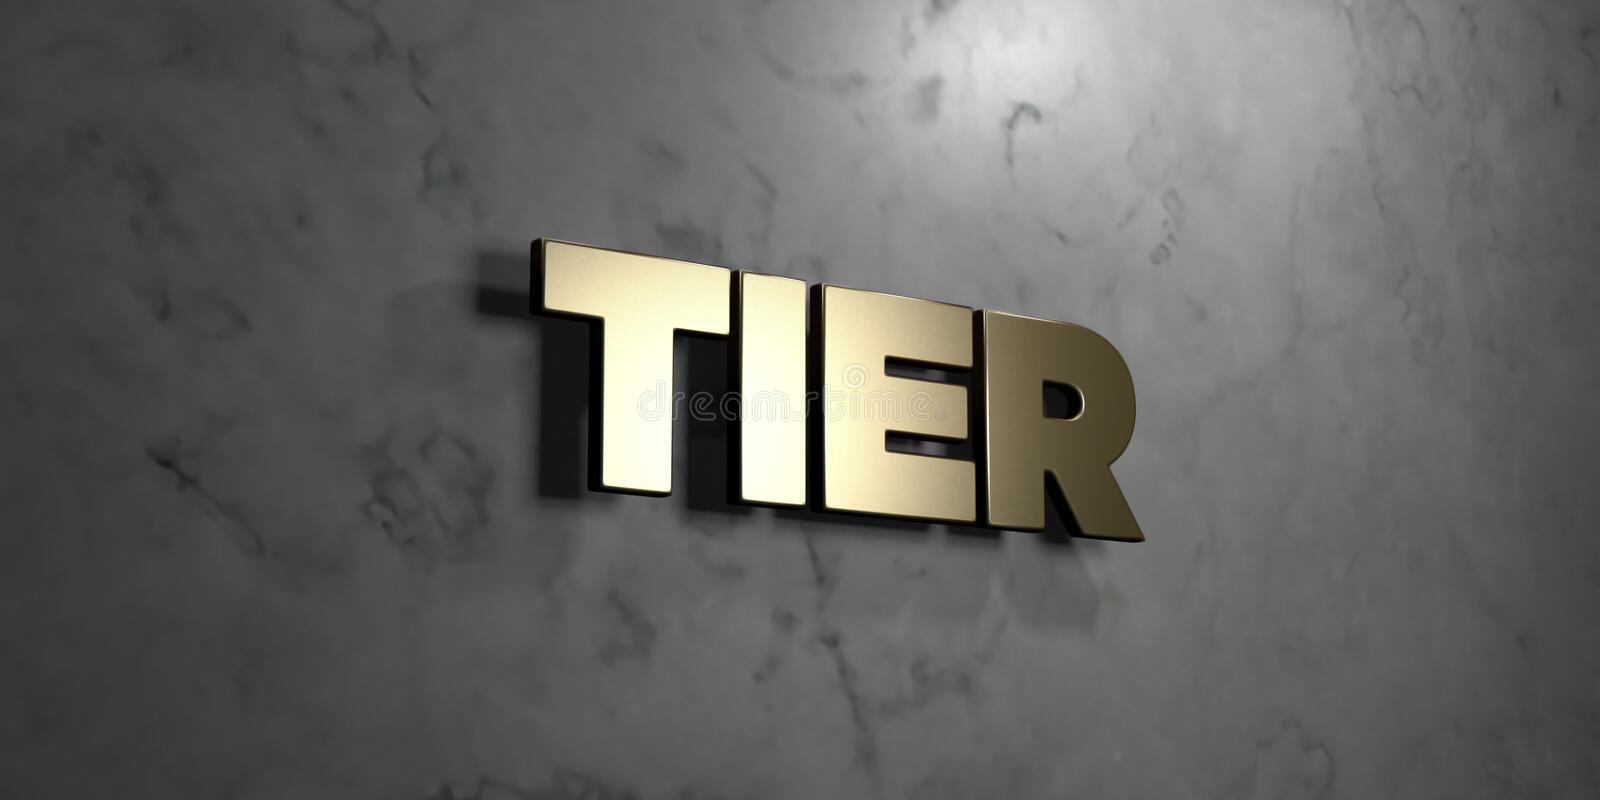 Tier - Gold sign mounted on glossy marble wall - 3D rendered royalty free stock illustration. This image can be used for an online website banner ad or a print vector illustration